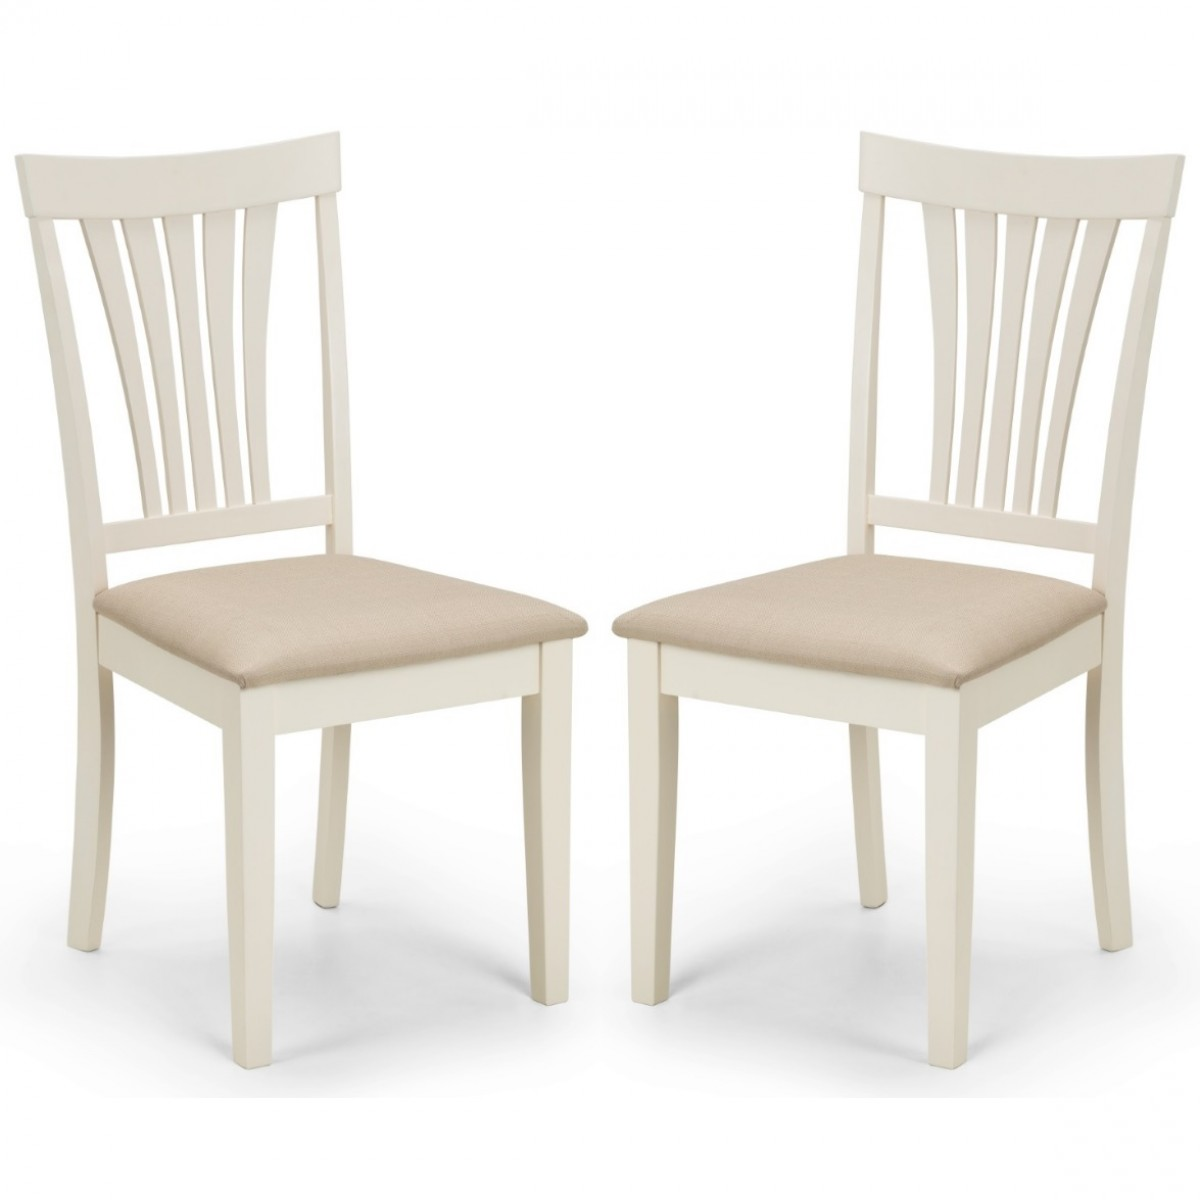 Ivory Dining Chairs Dining Chairs Stamford Ivory Dining Chairs Sta002